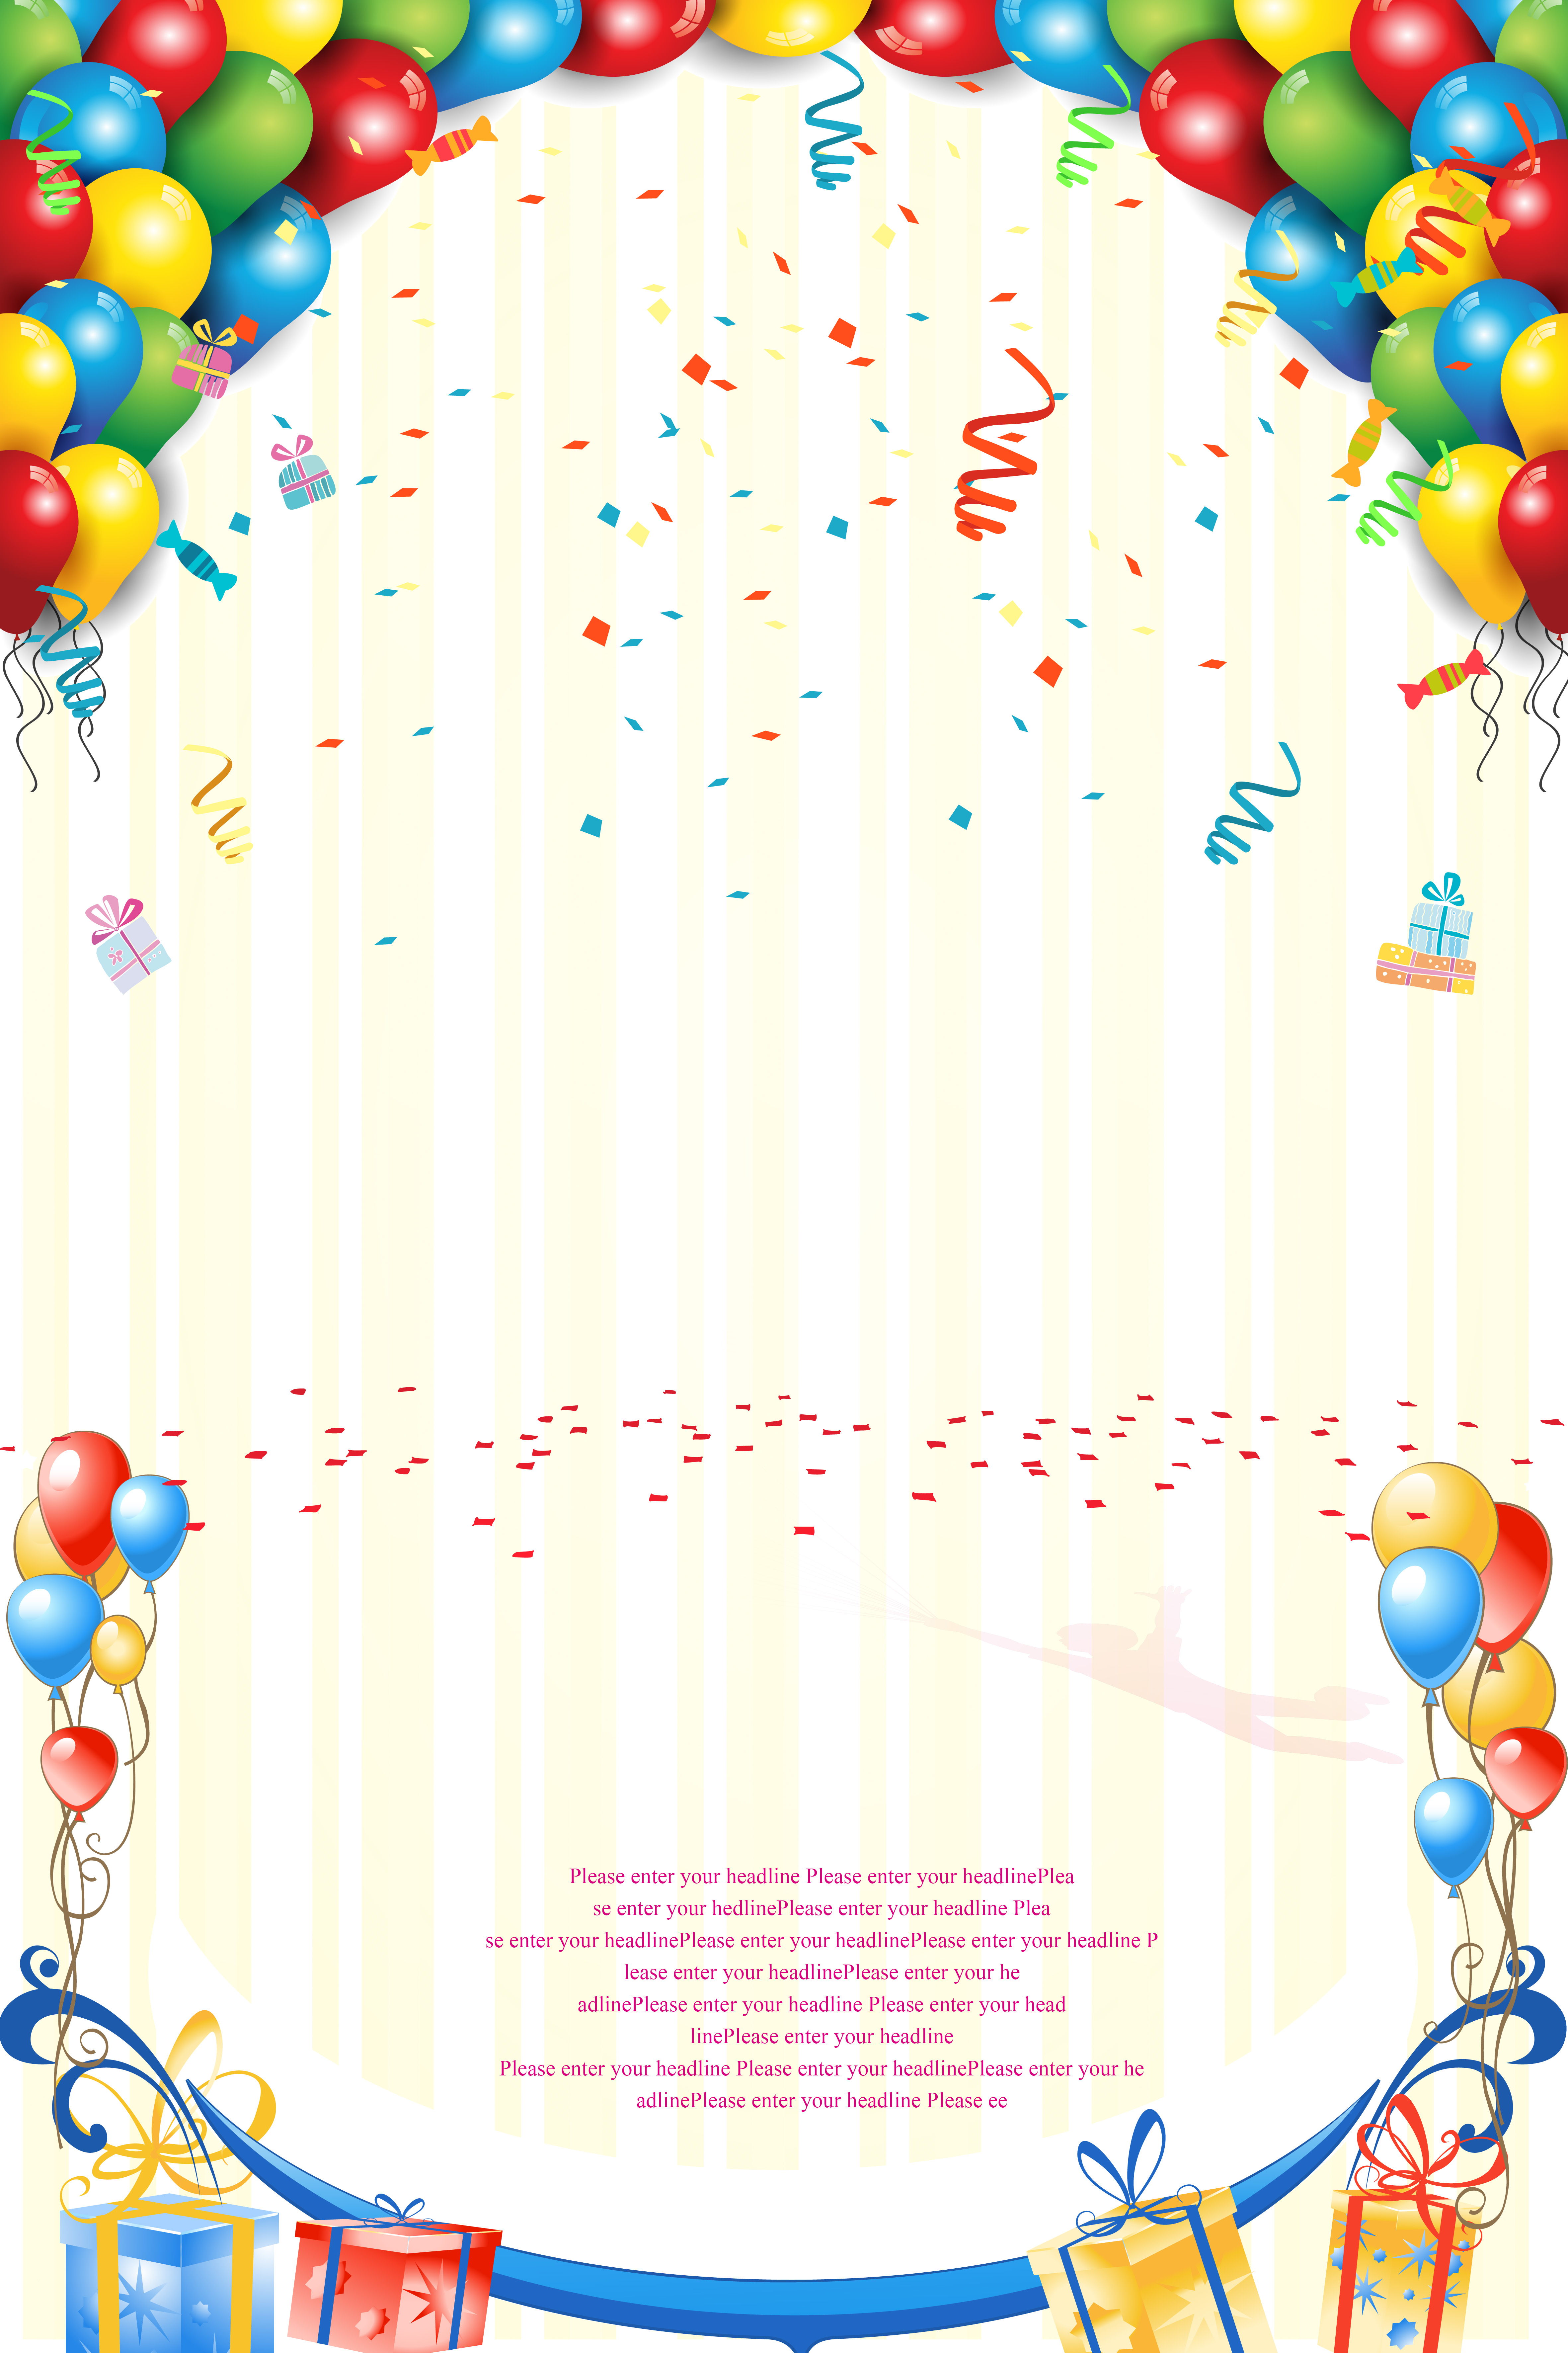 Fall Cartoon Wallpaper Colorful Ribbons Background Balloon Festival Poster